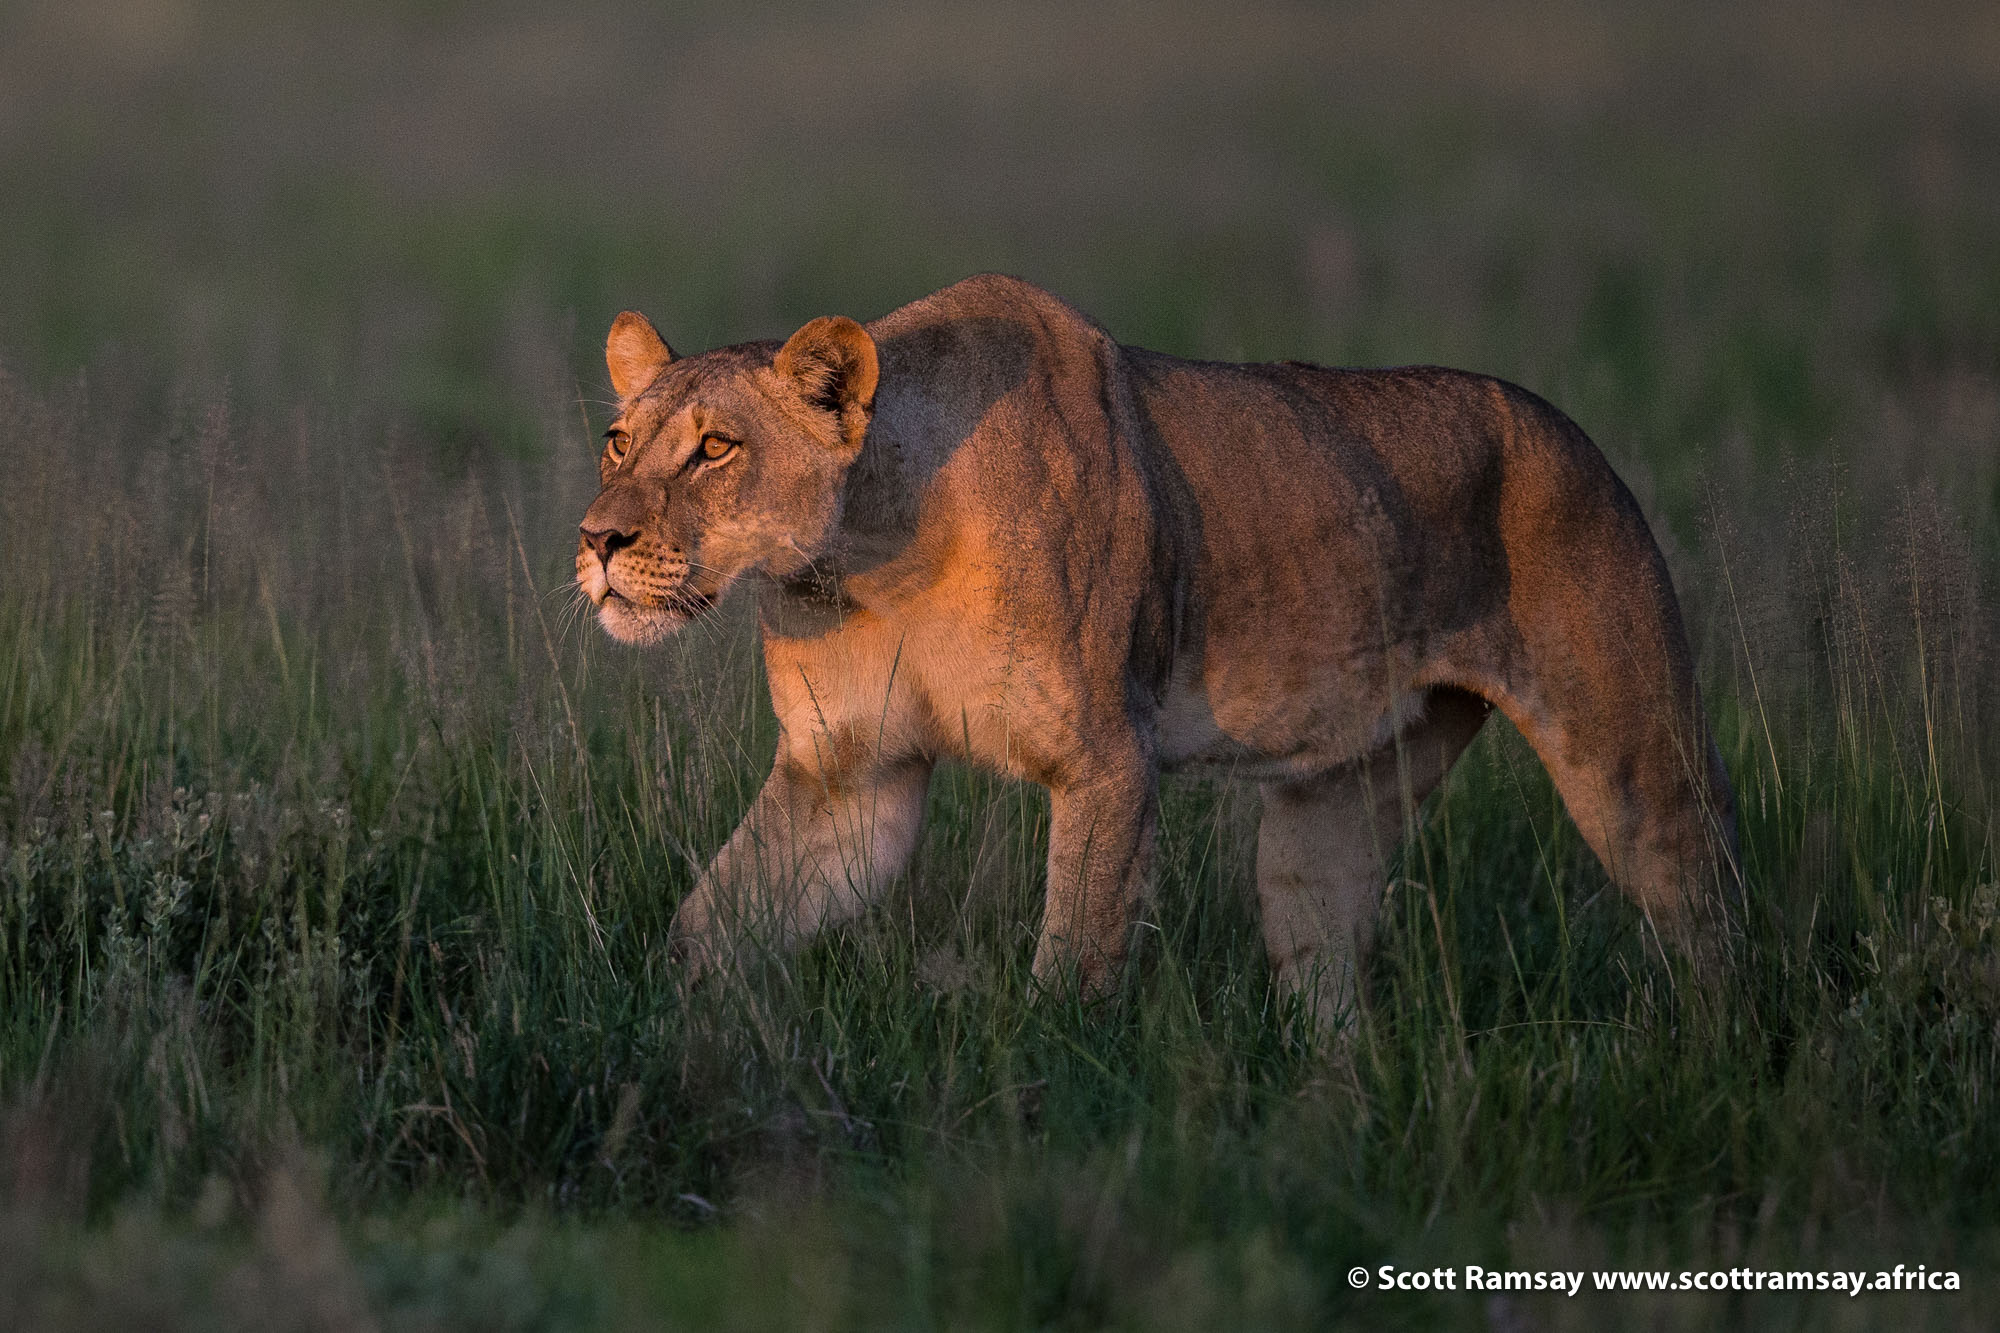 And a very beautiful, solid-looking lioness is just behind him! What a beauty...